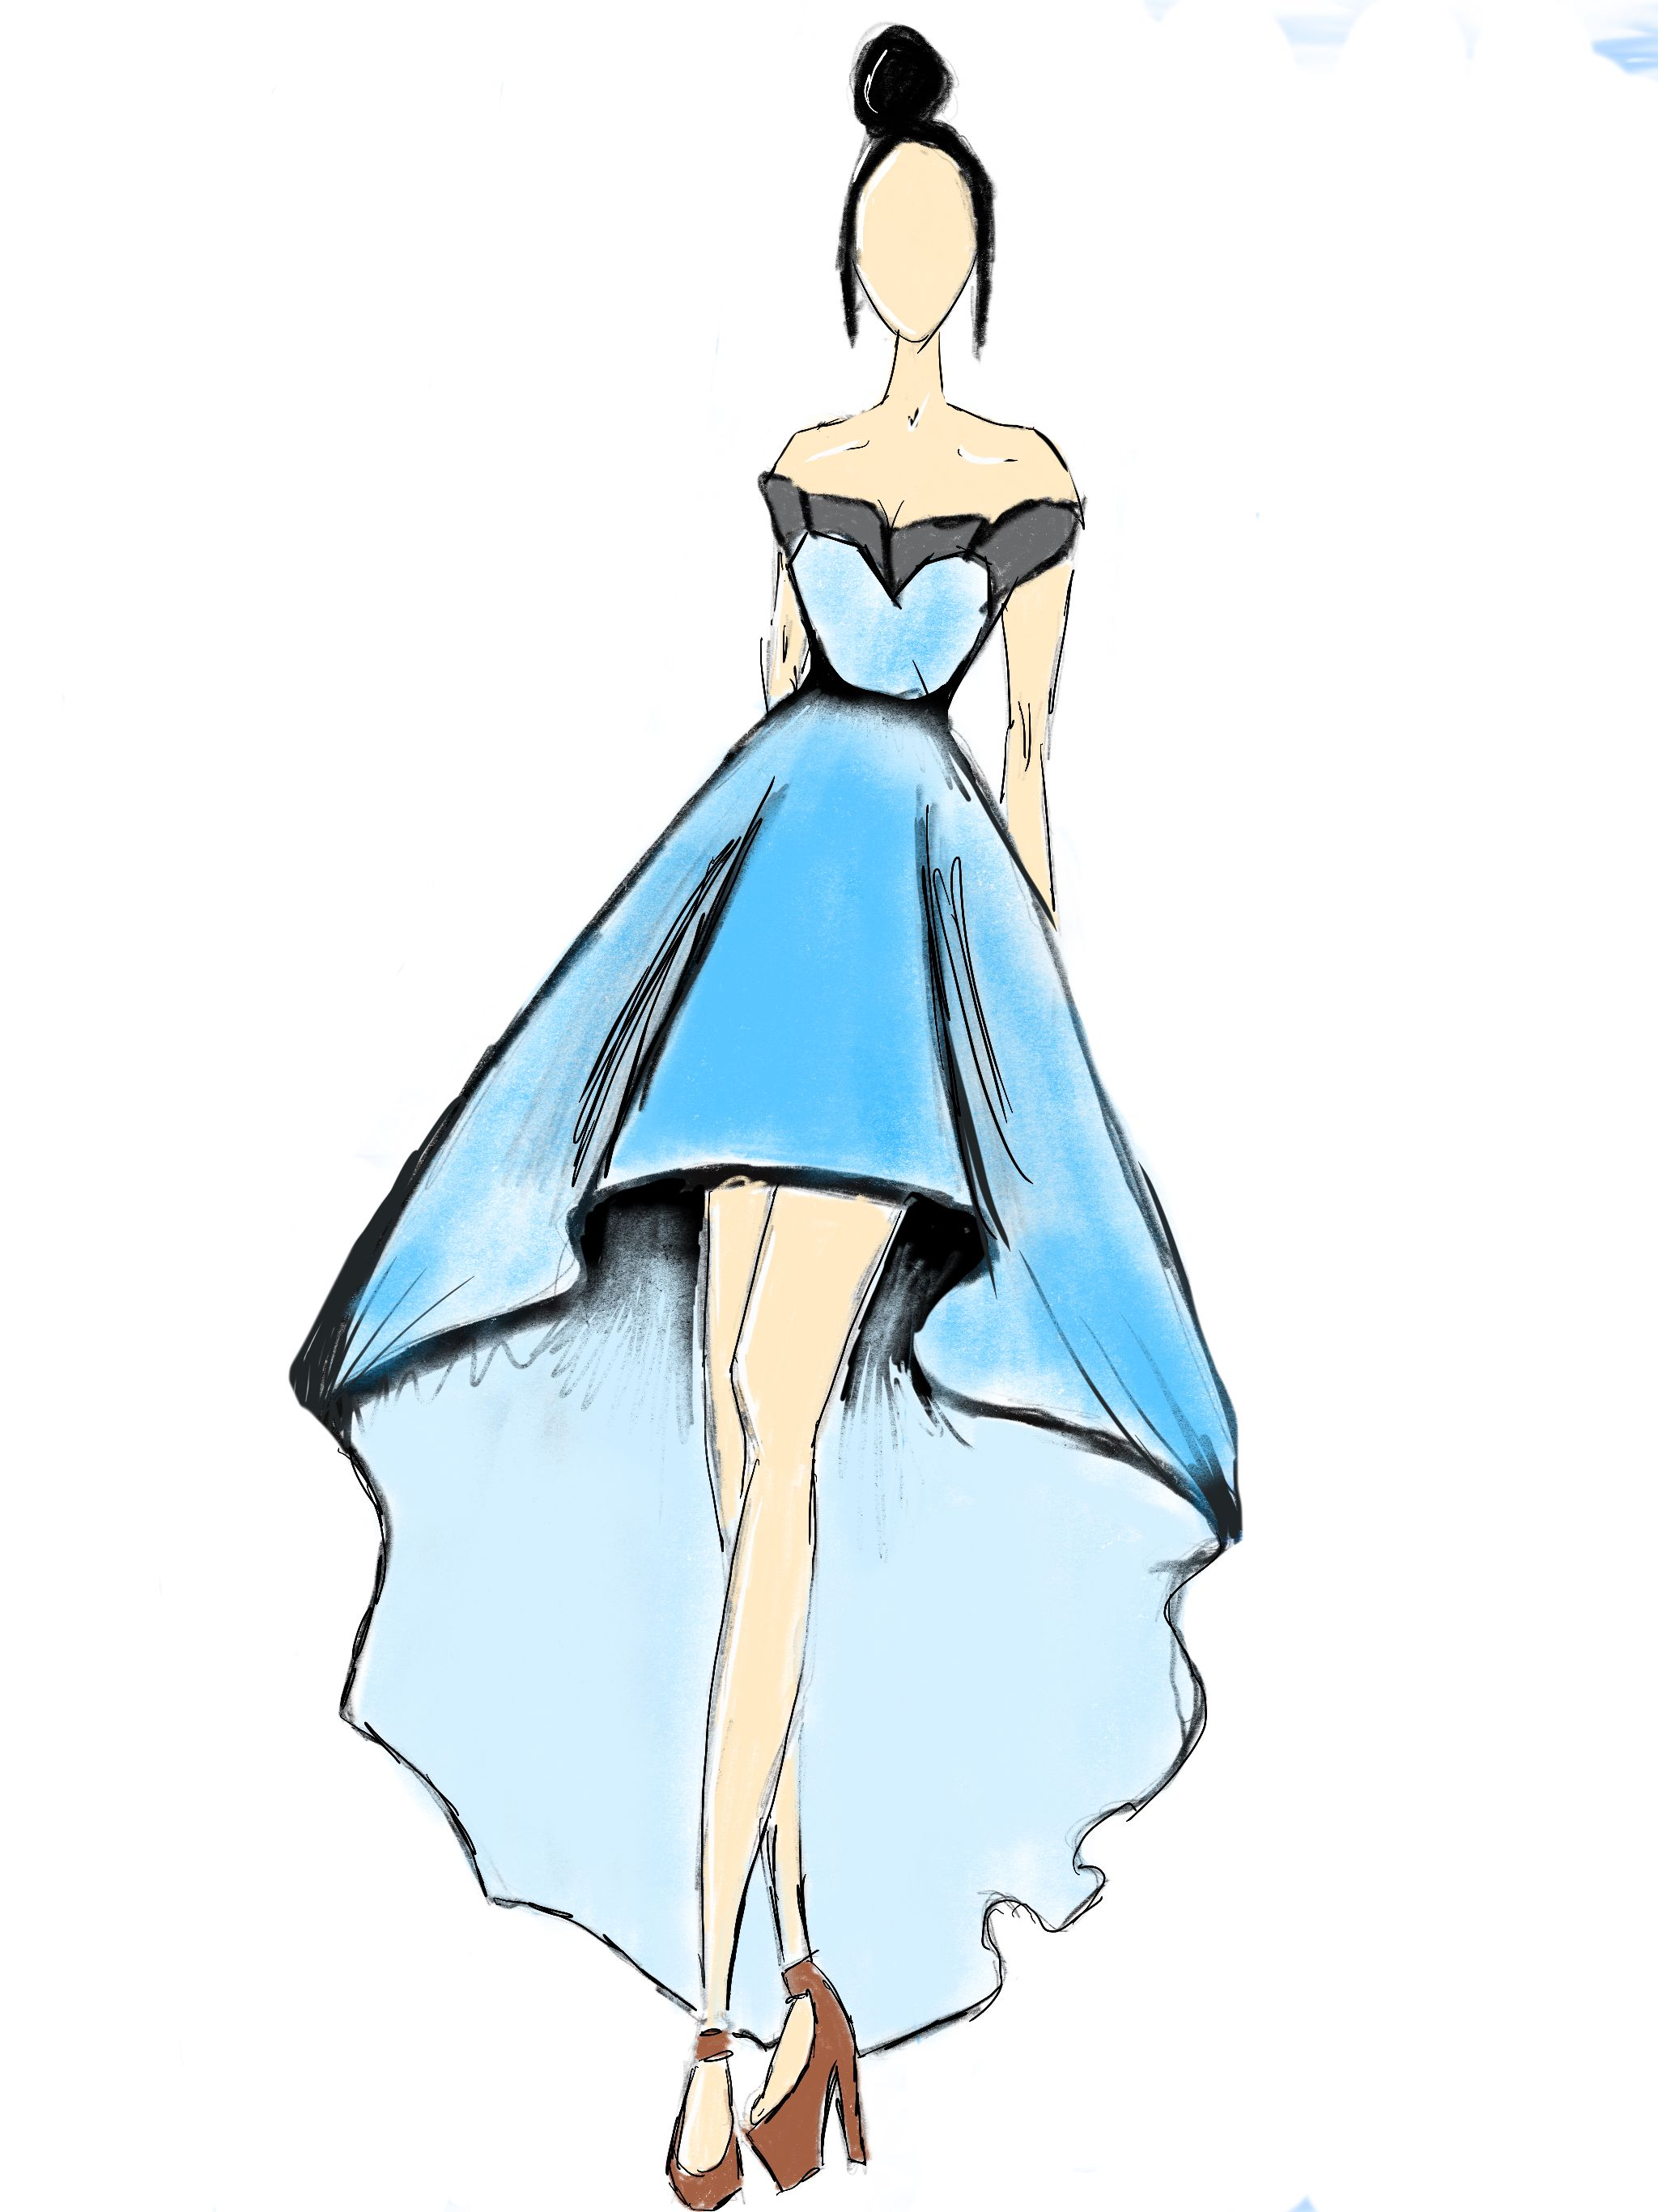 Ball Gown Drawing